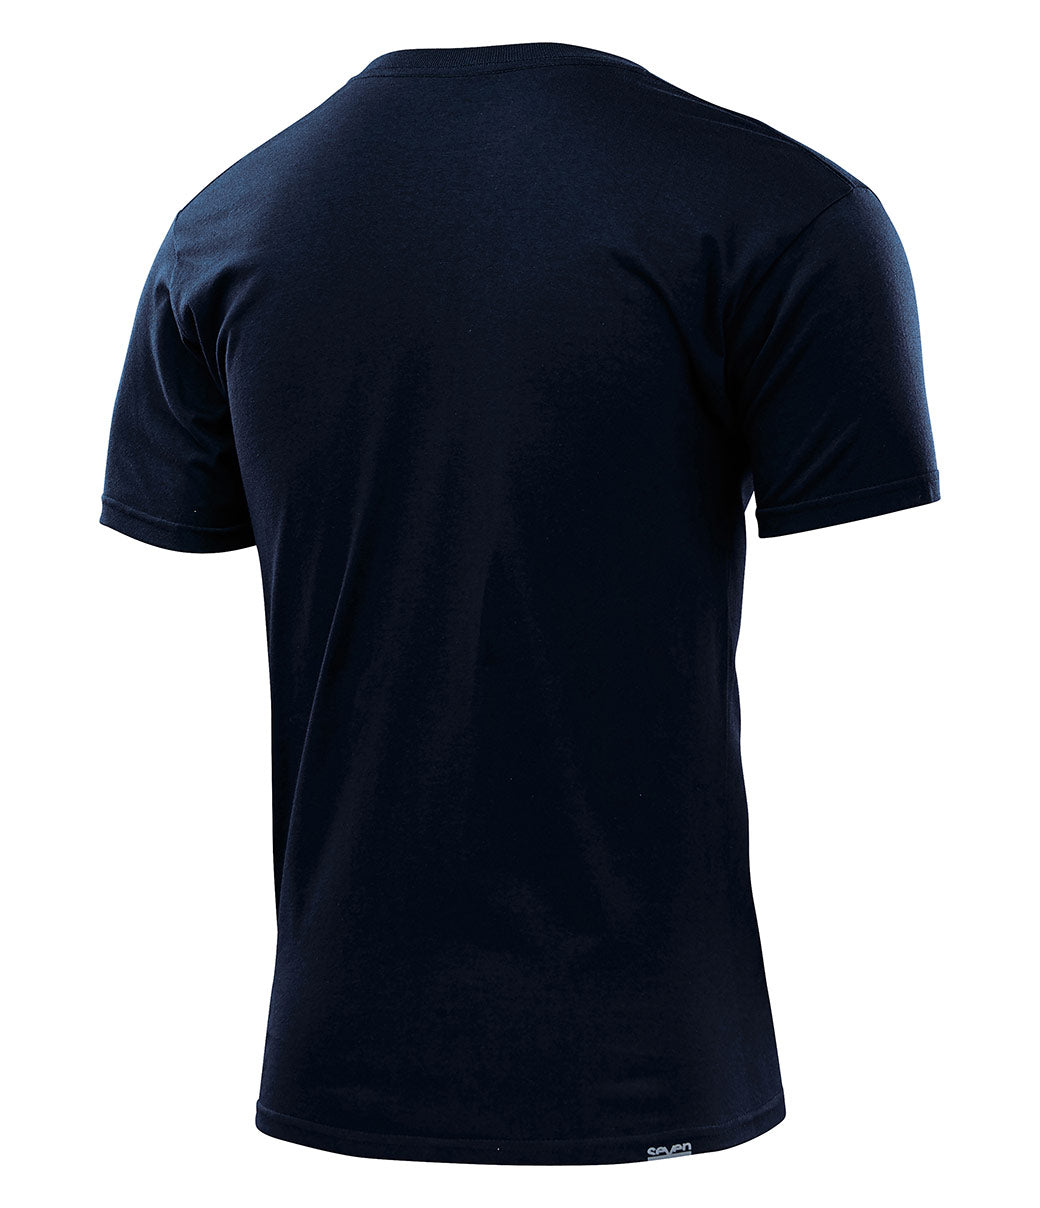 Send-It Tee - Navy